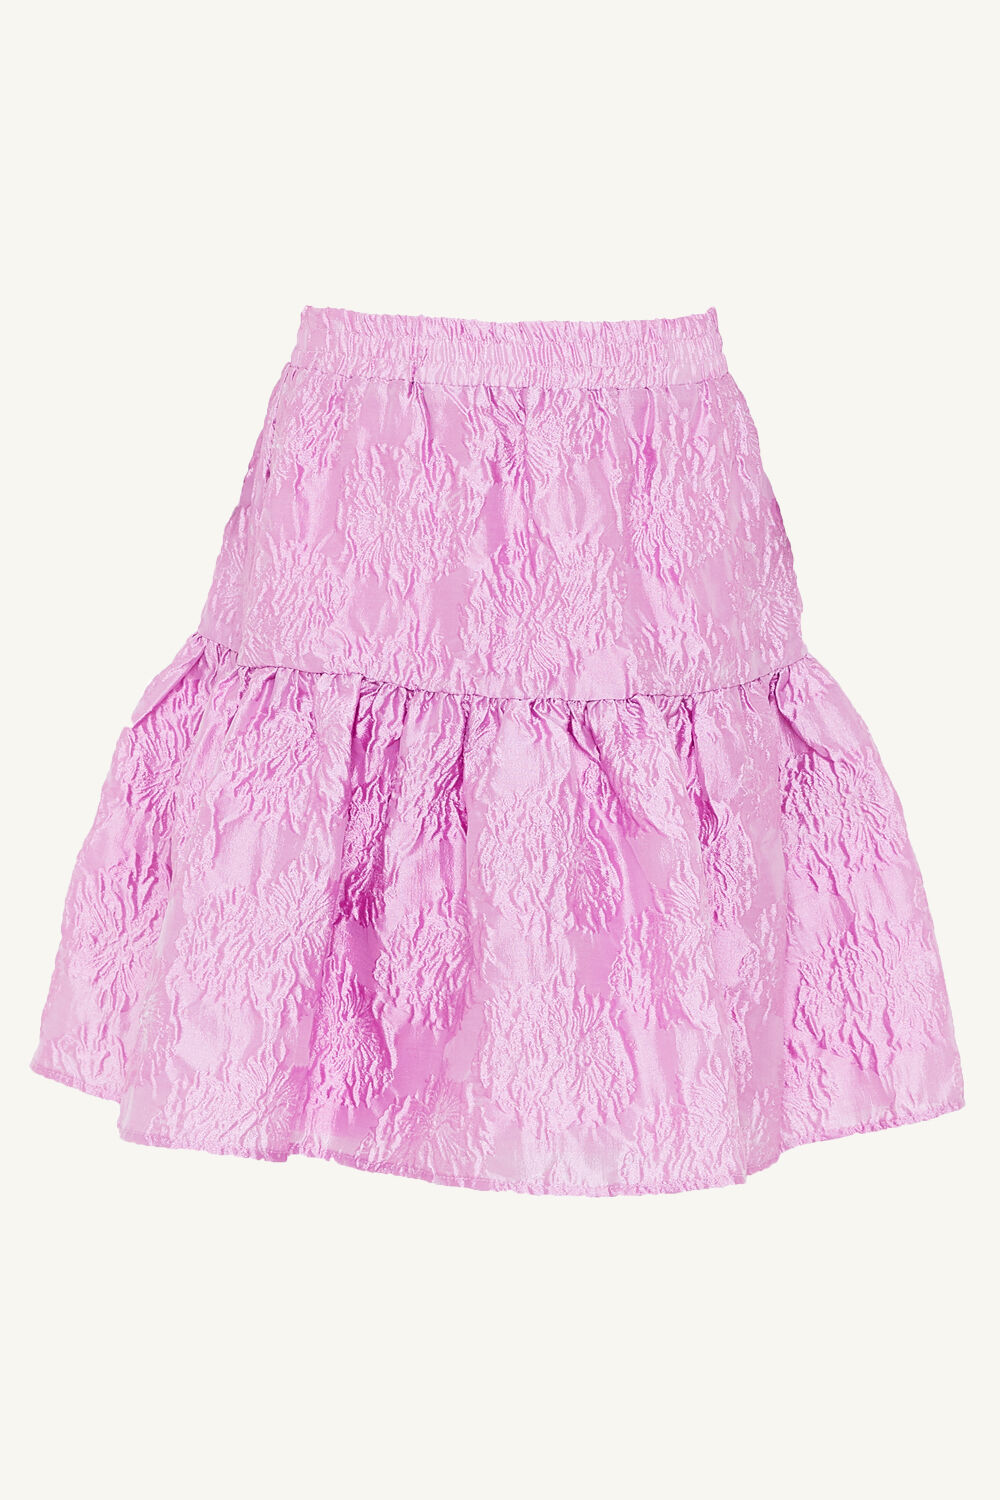 TWEEN GIRL DEMI SKIRT in colour LILAC SNOW